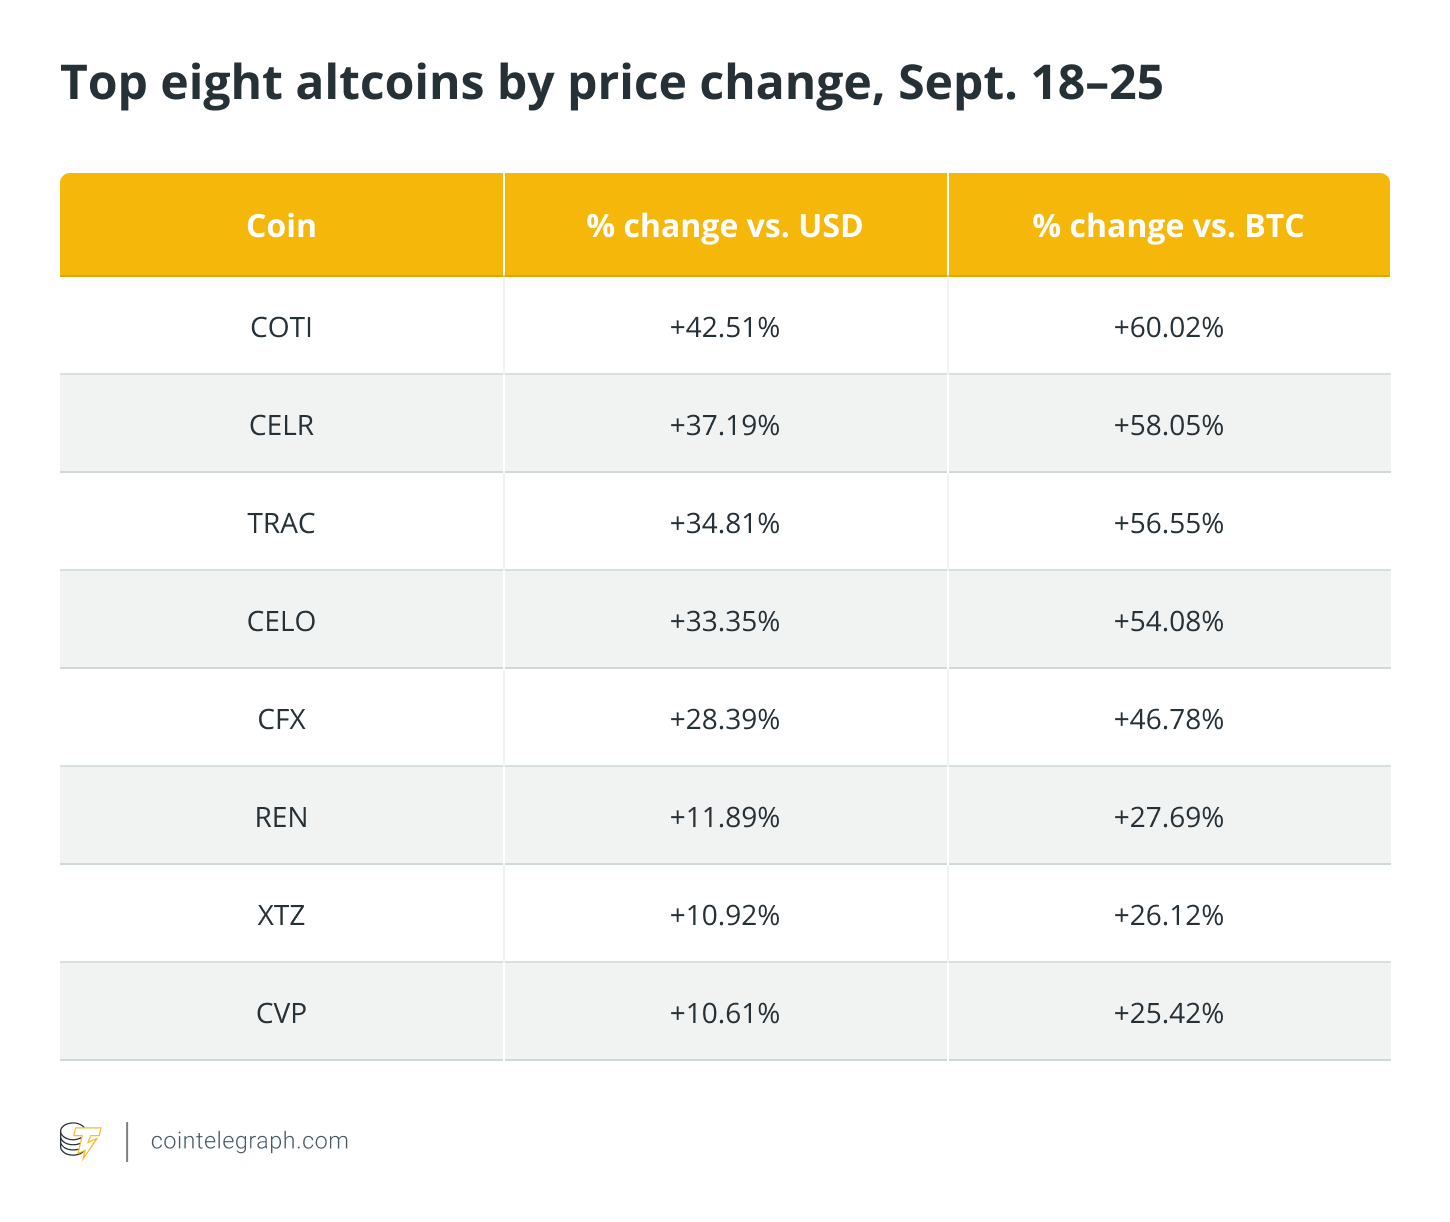 This key trading term uncovered bullish patterns in altcoins, even as the BTC price around 7 p.m. dropped.